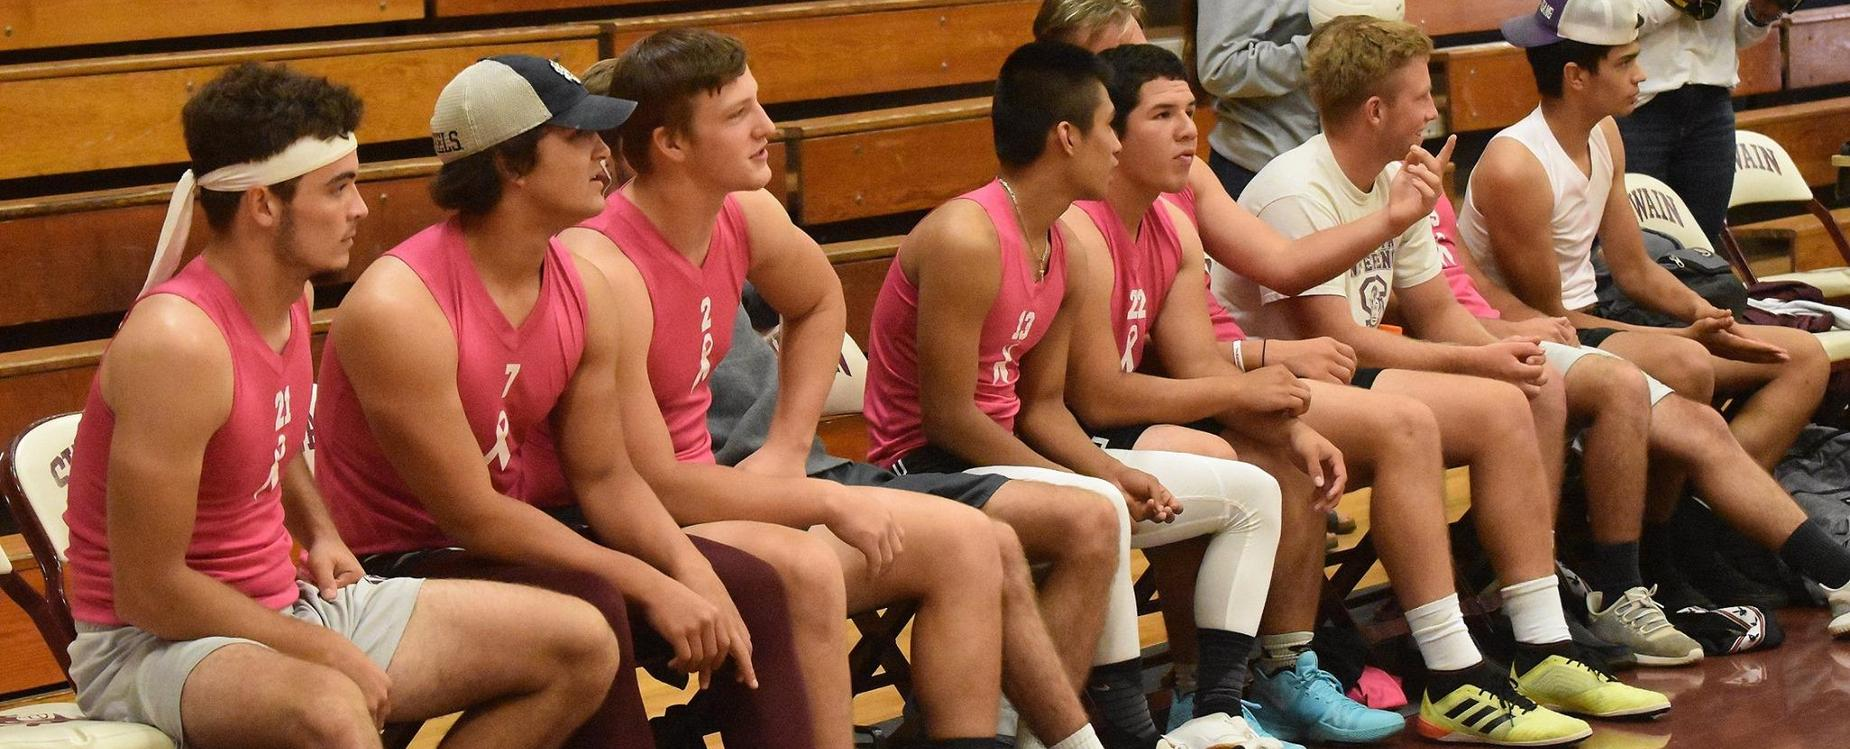 The guys are ready to get volleyball started for homecoming week